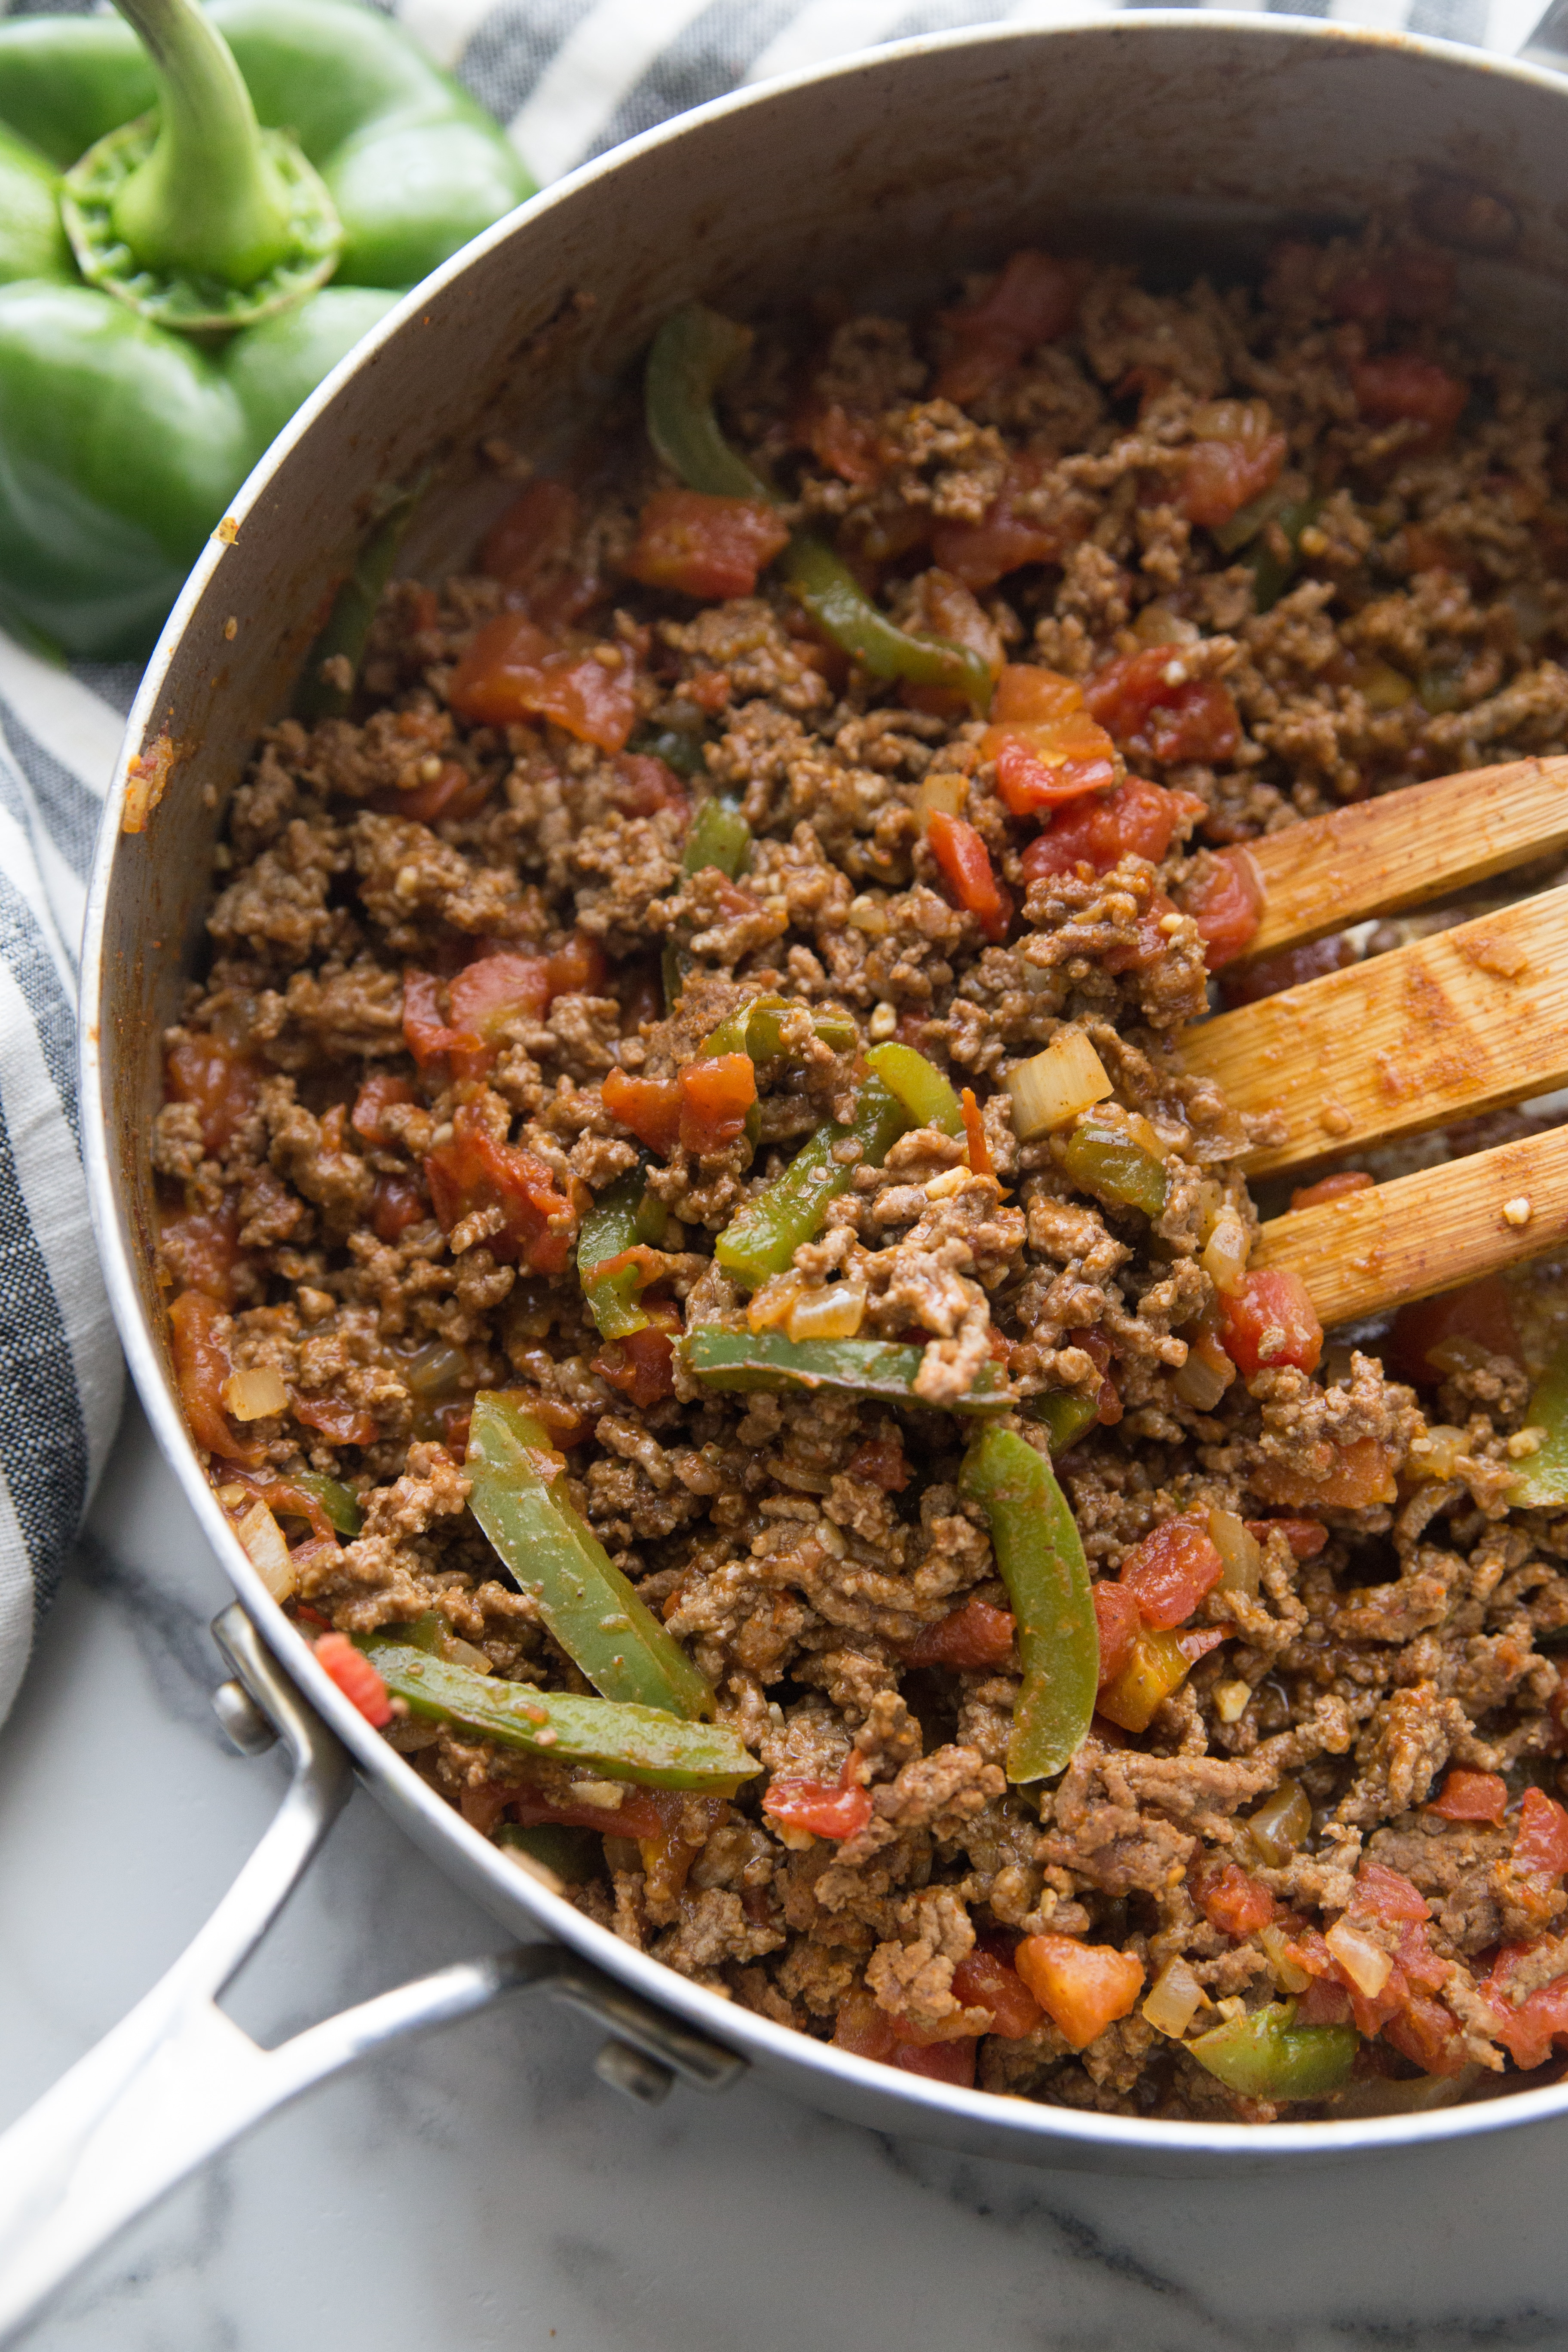 ground taco meat in a skillet with ro-tel tomatoes, taco seasoning and veggies